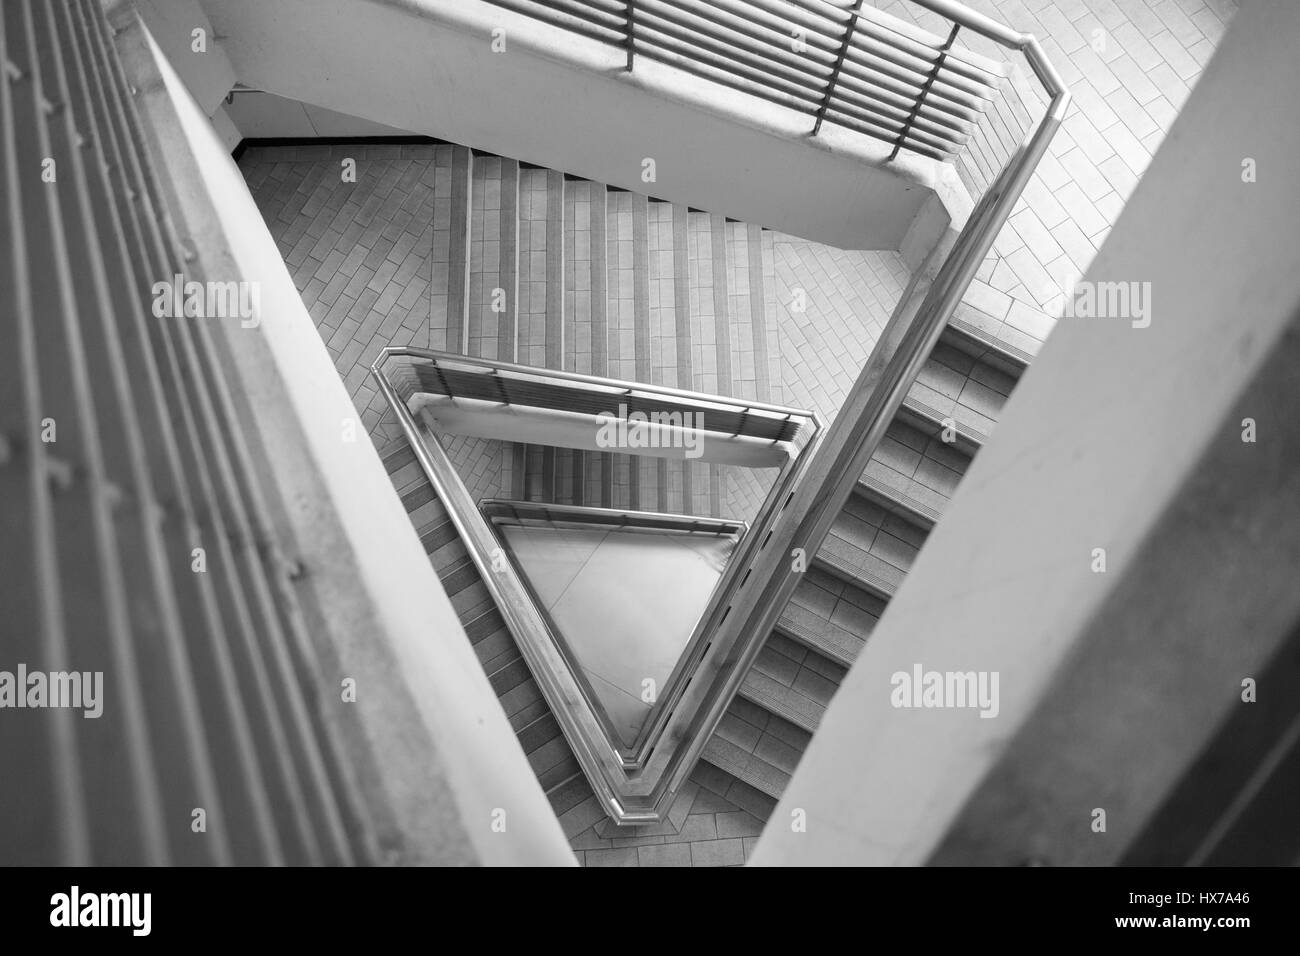 Triangular Stair Case Architectural Style Looking Up